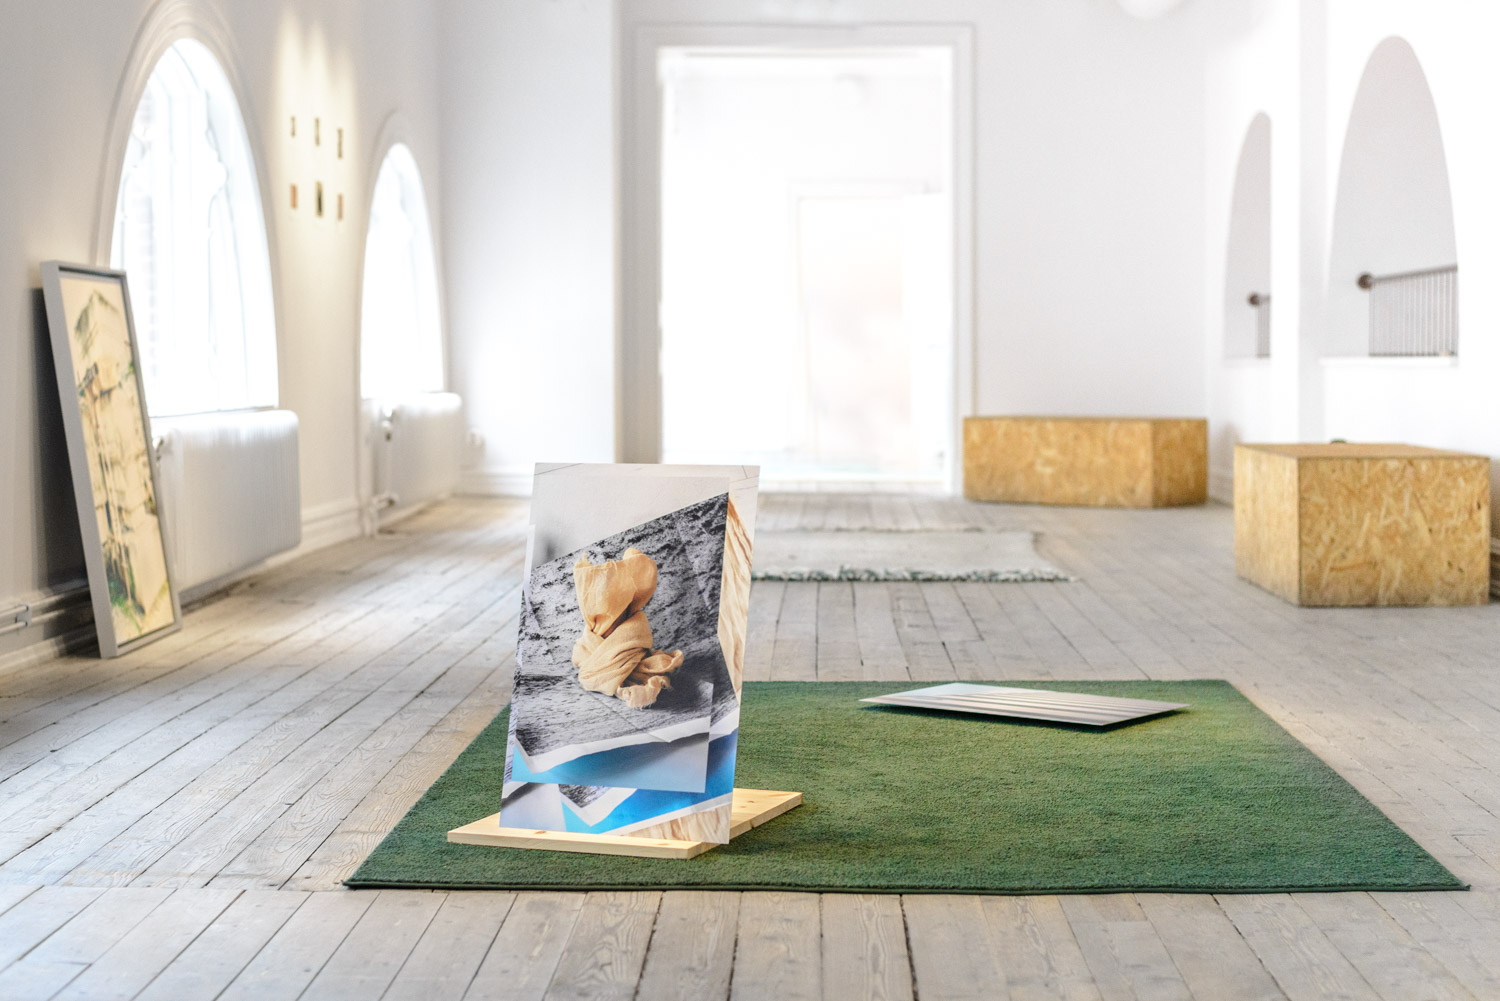 contemporary art installation with photographs on the floor, by Artist Stefano Conti